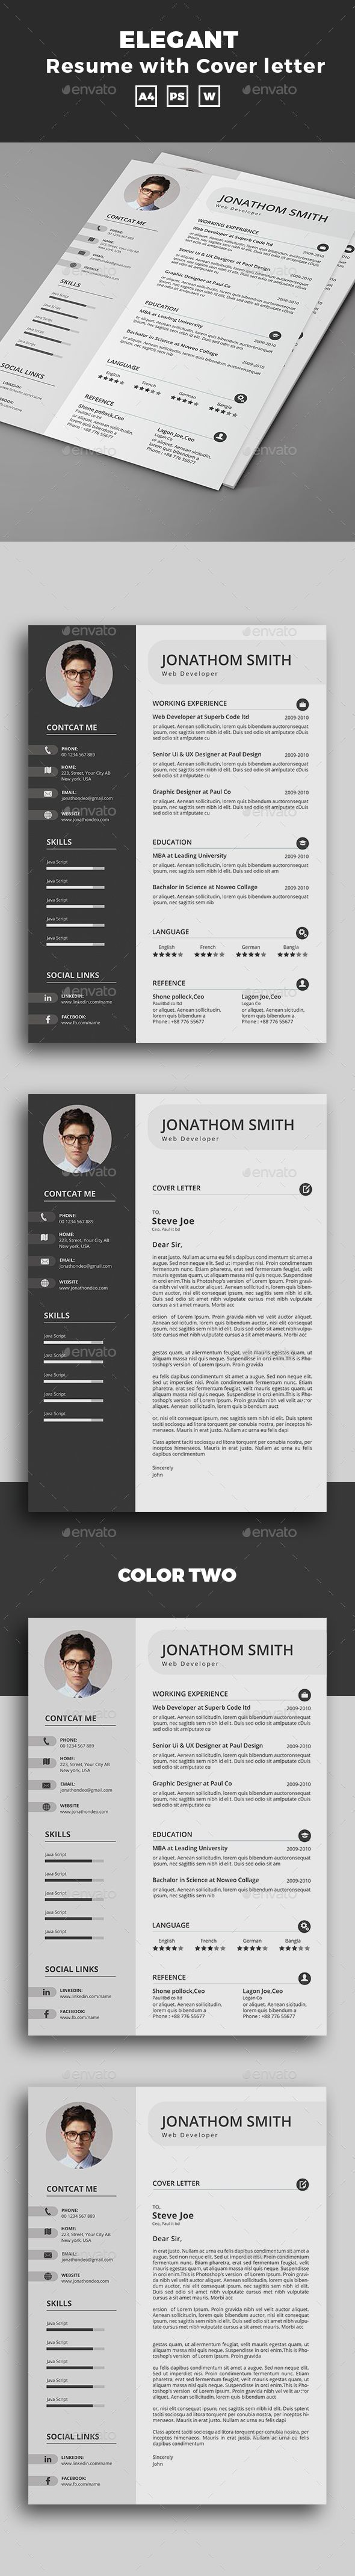 Resume  — PSD Template #resume booklet #resume • Download ➝ https://graphicriver.net/item/resume/18528282?ref=pxcr